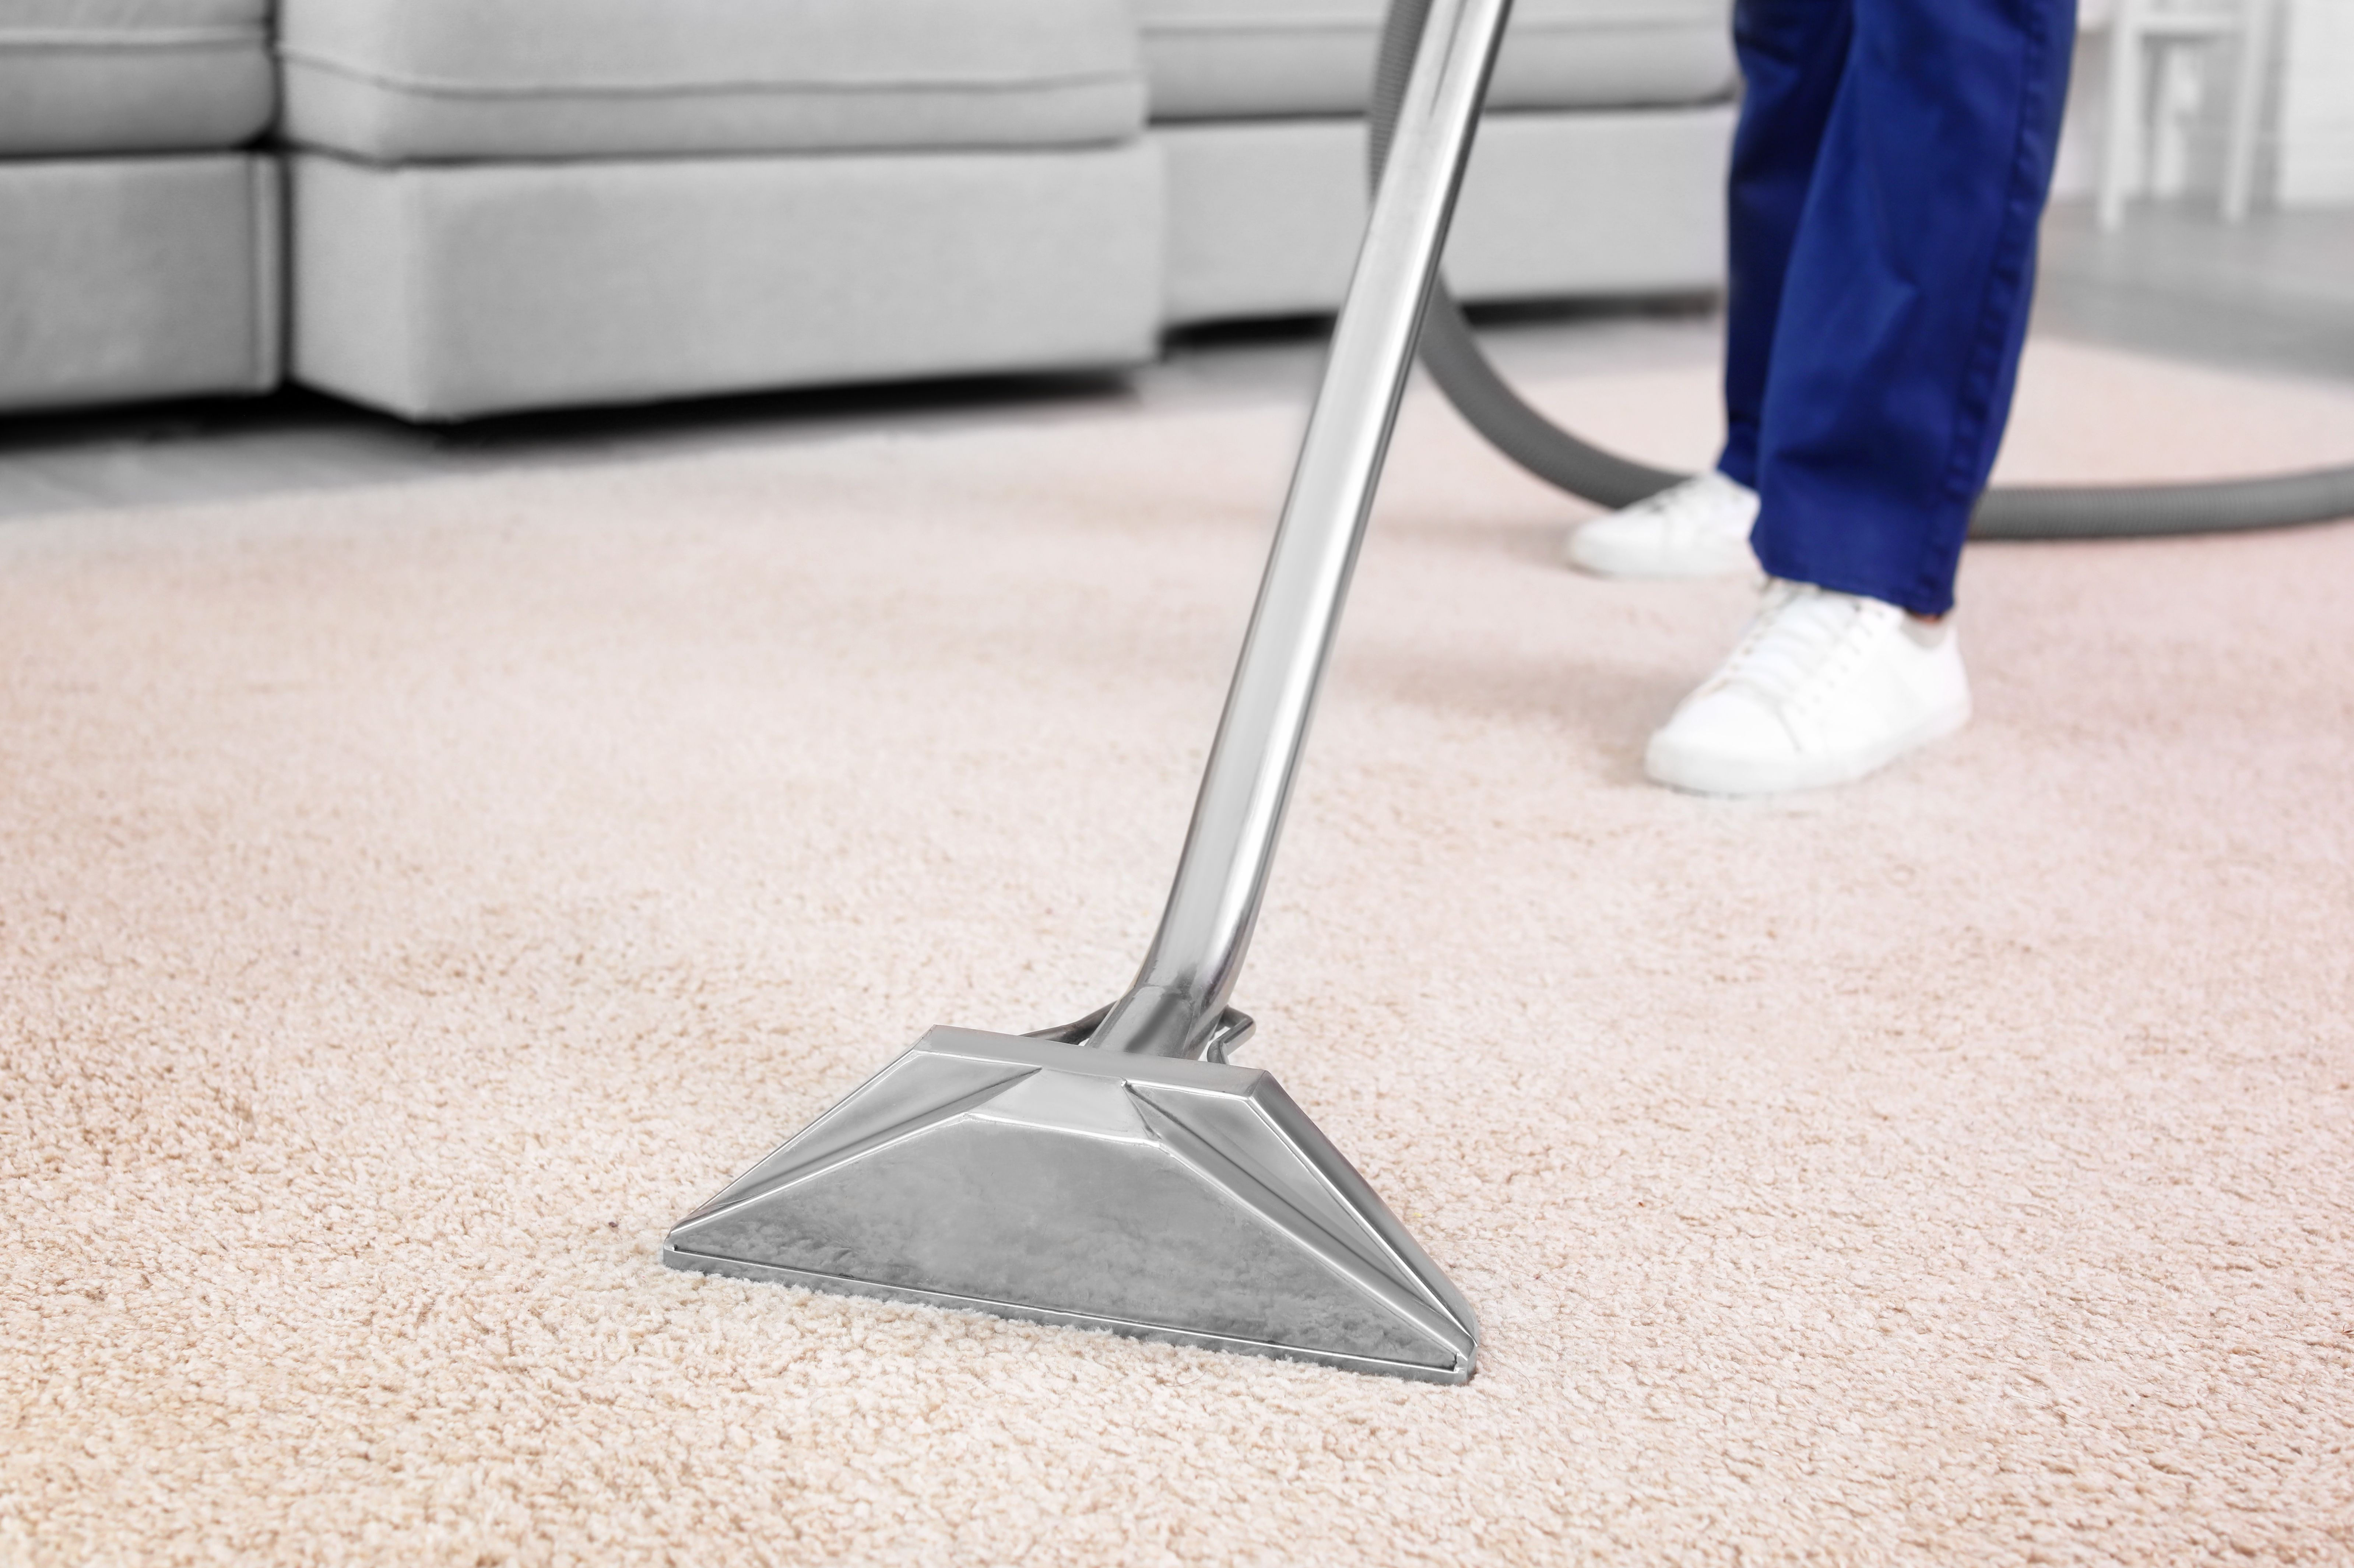 Carpet Cleaning Services In Spartanburg Sc How To Clean Carpet Carpet Cleaning Service Dry Carpet Cleaning